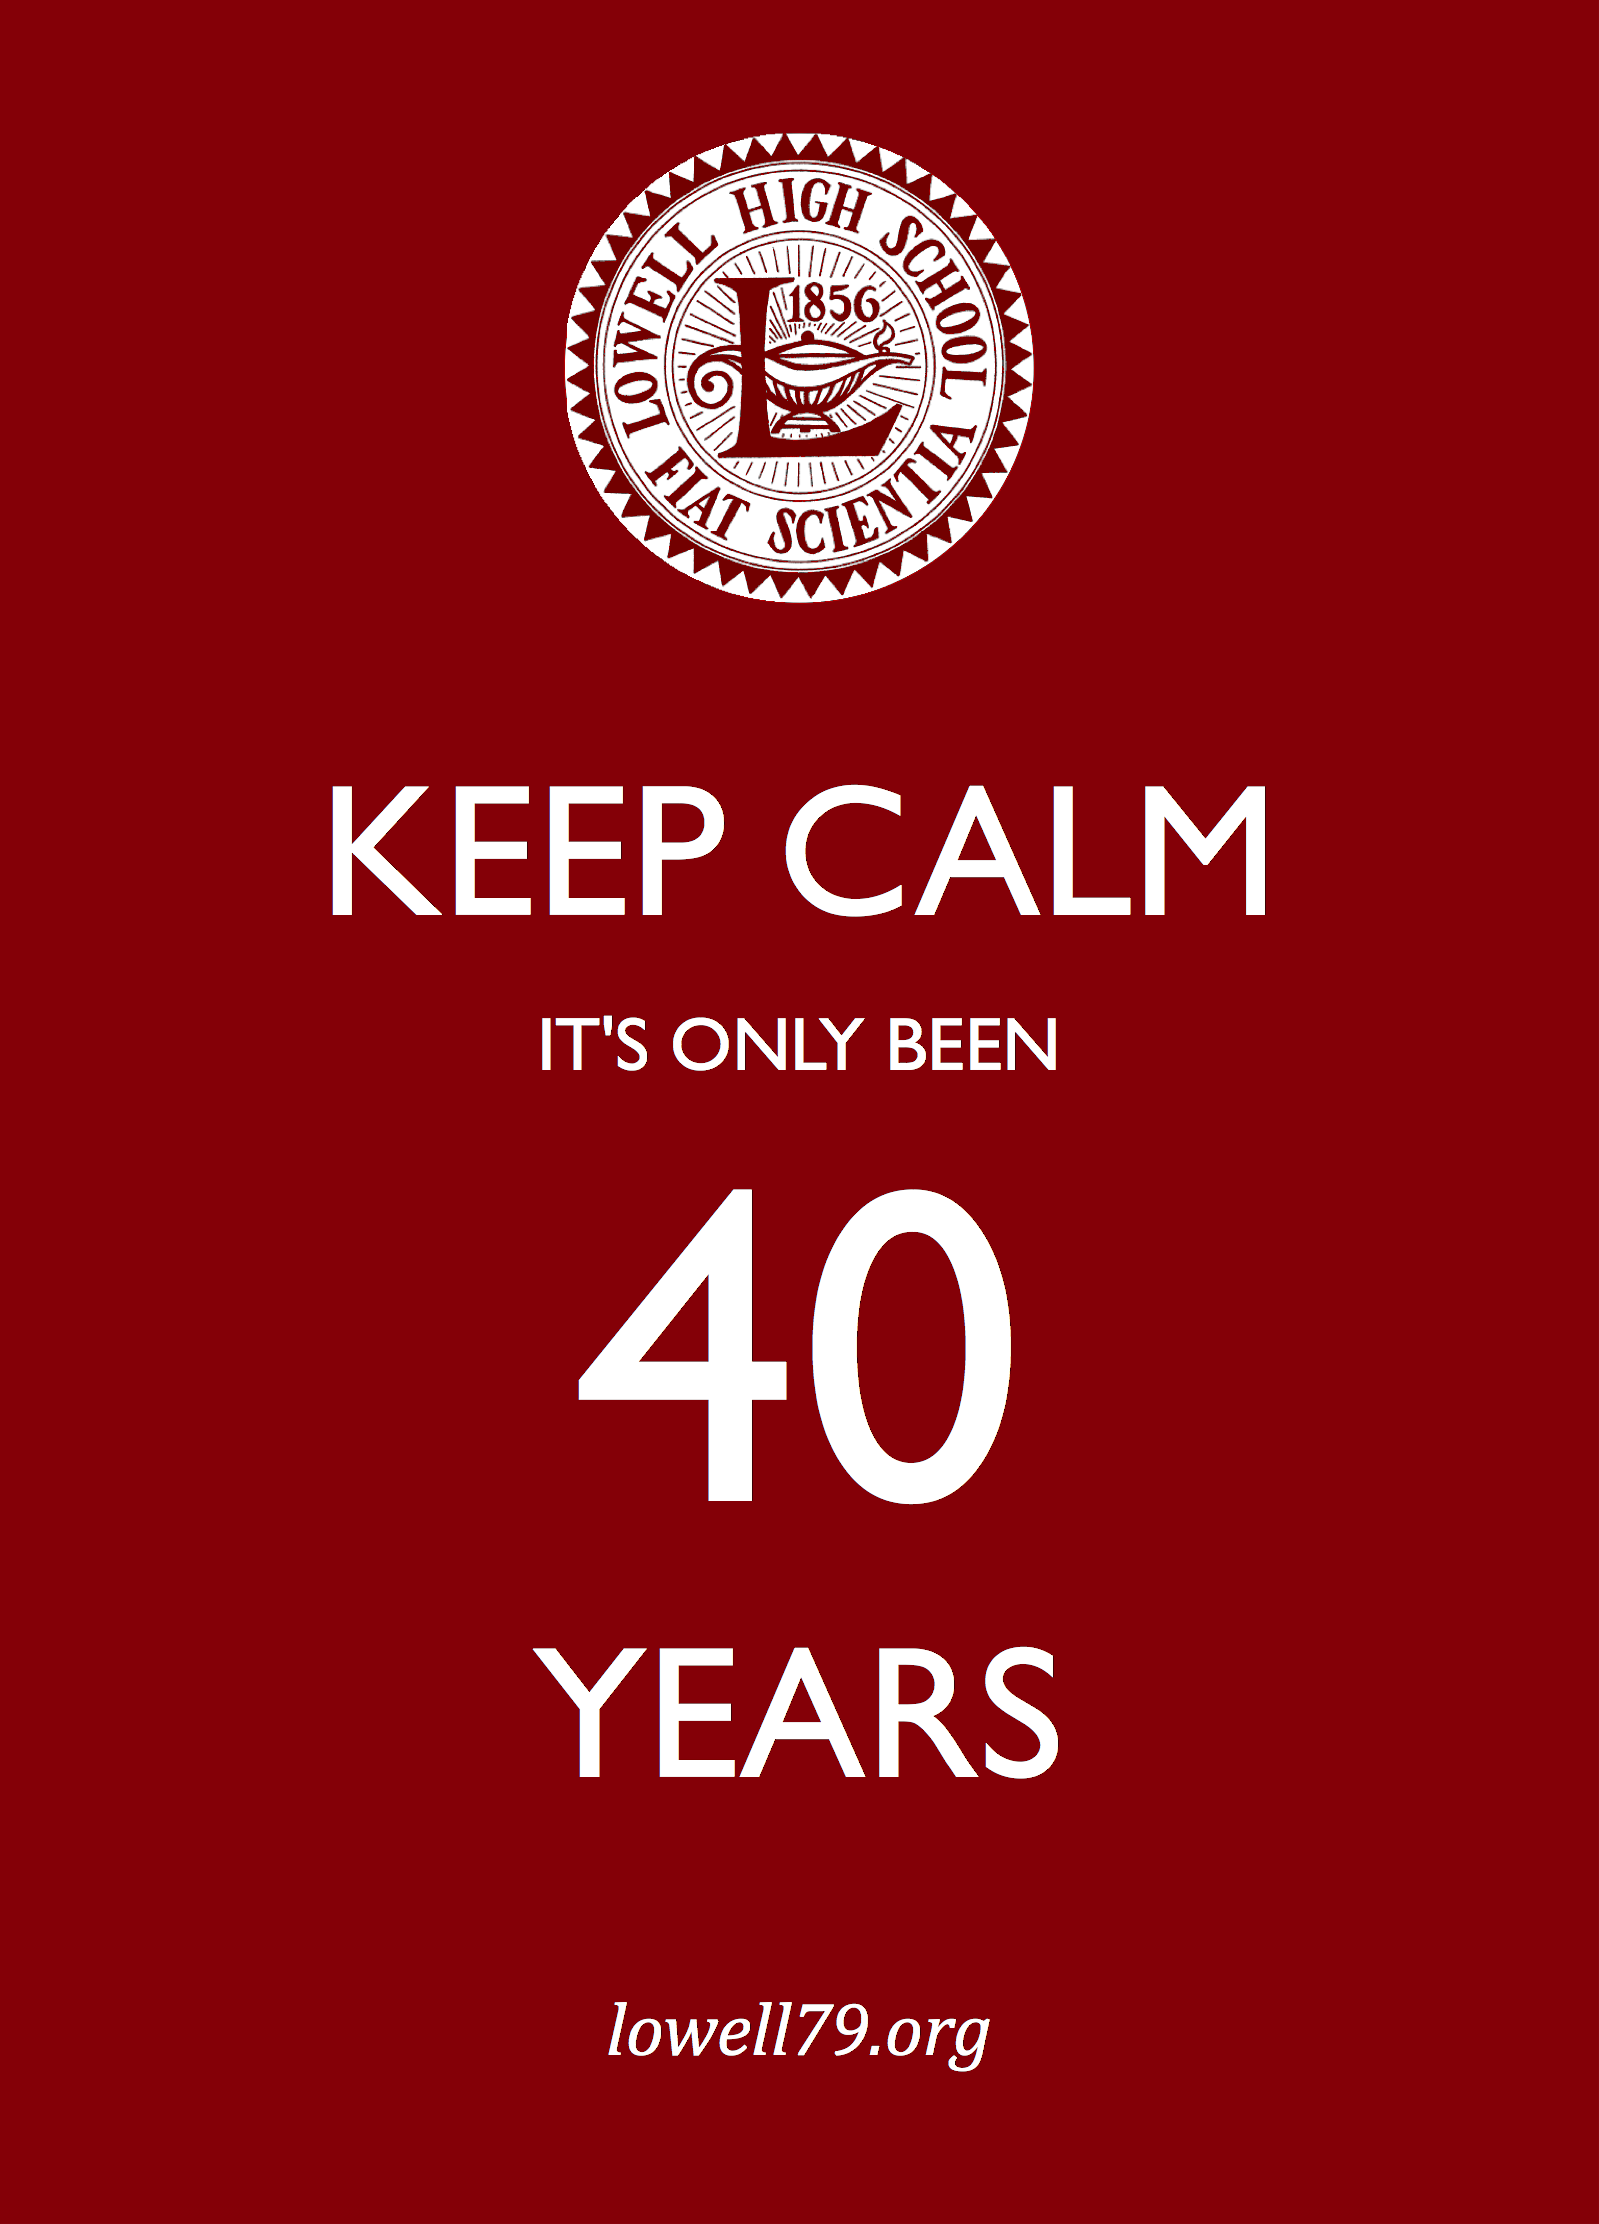 Lowell logo, Keep Calm it's only been 40 years and URL